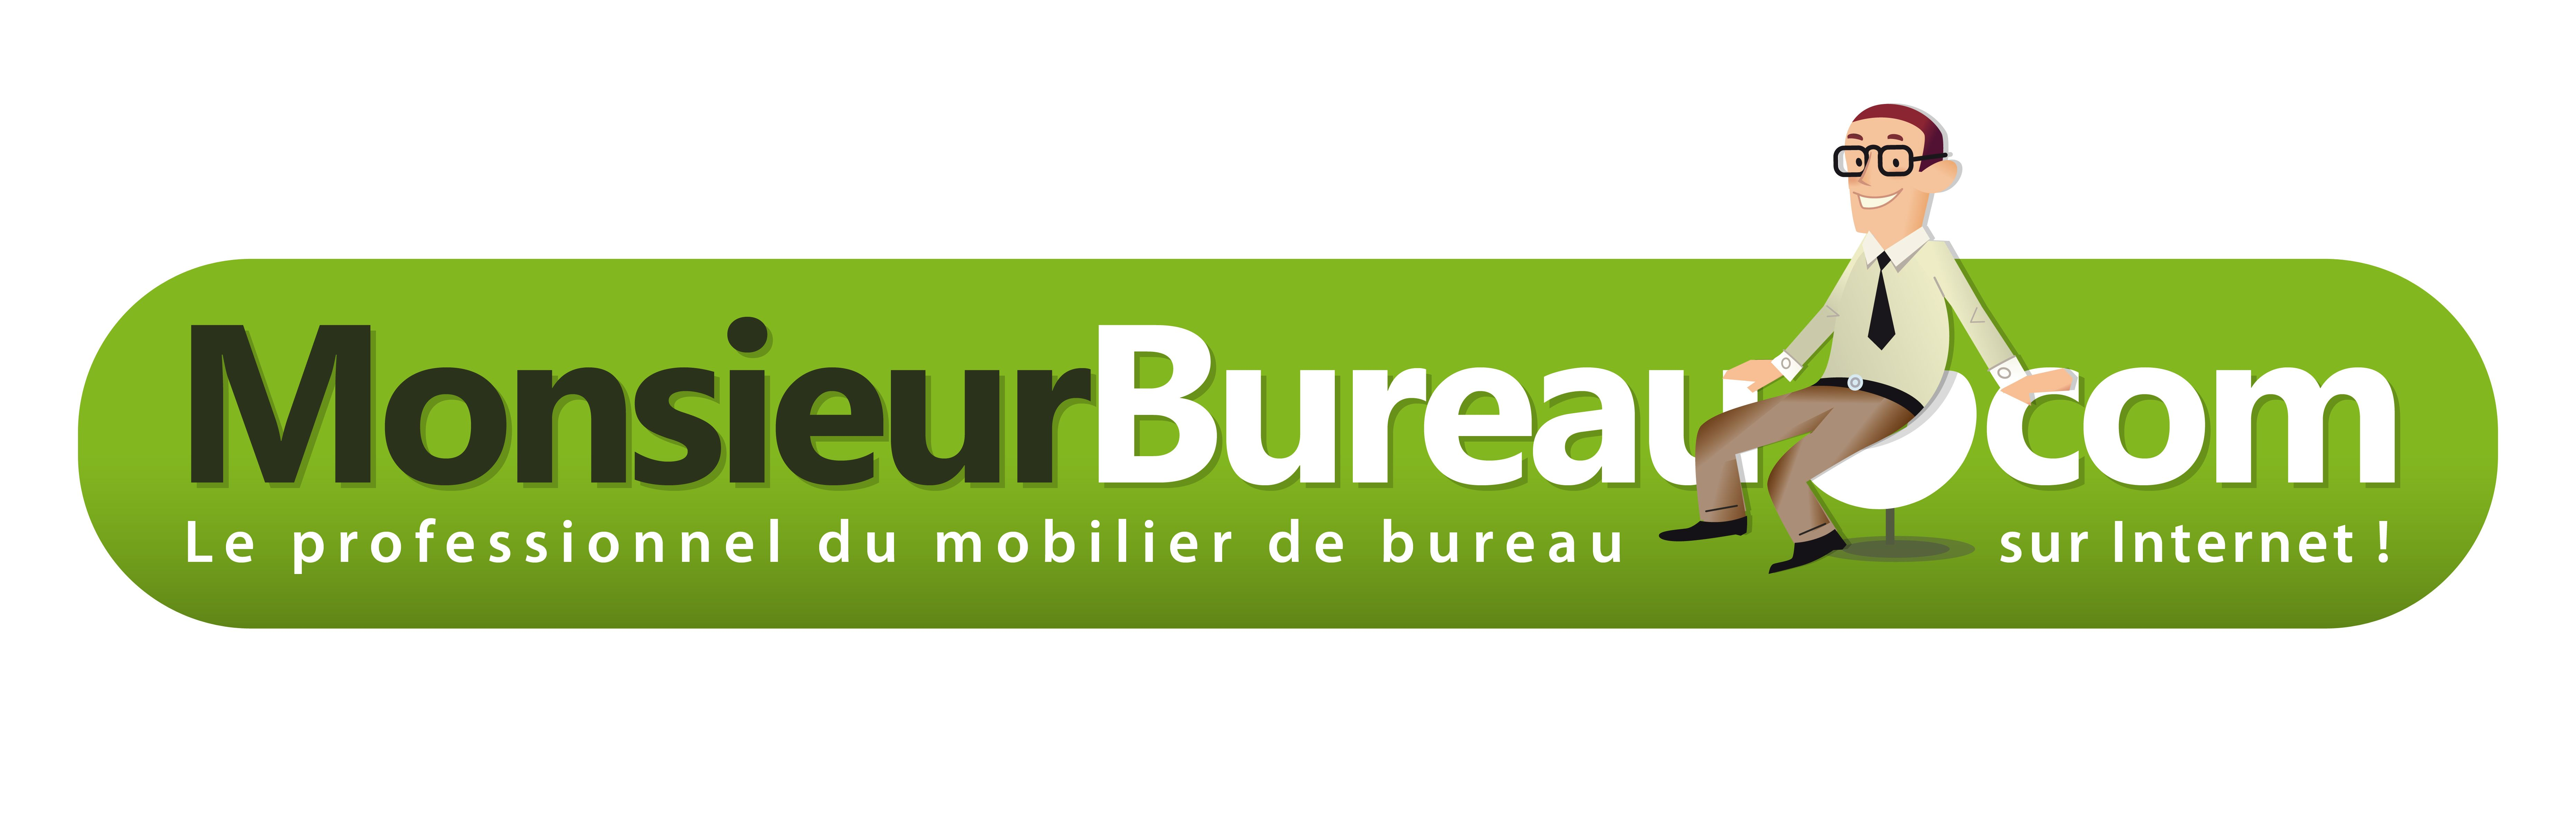 monsieurbureau